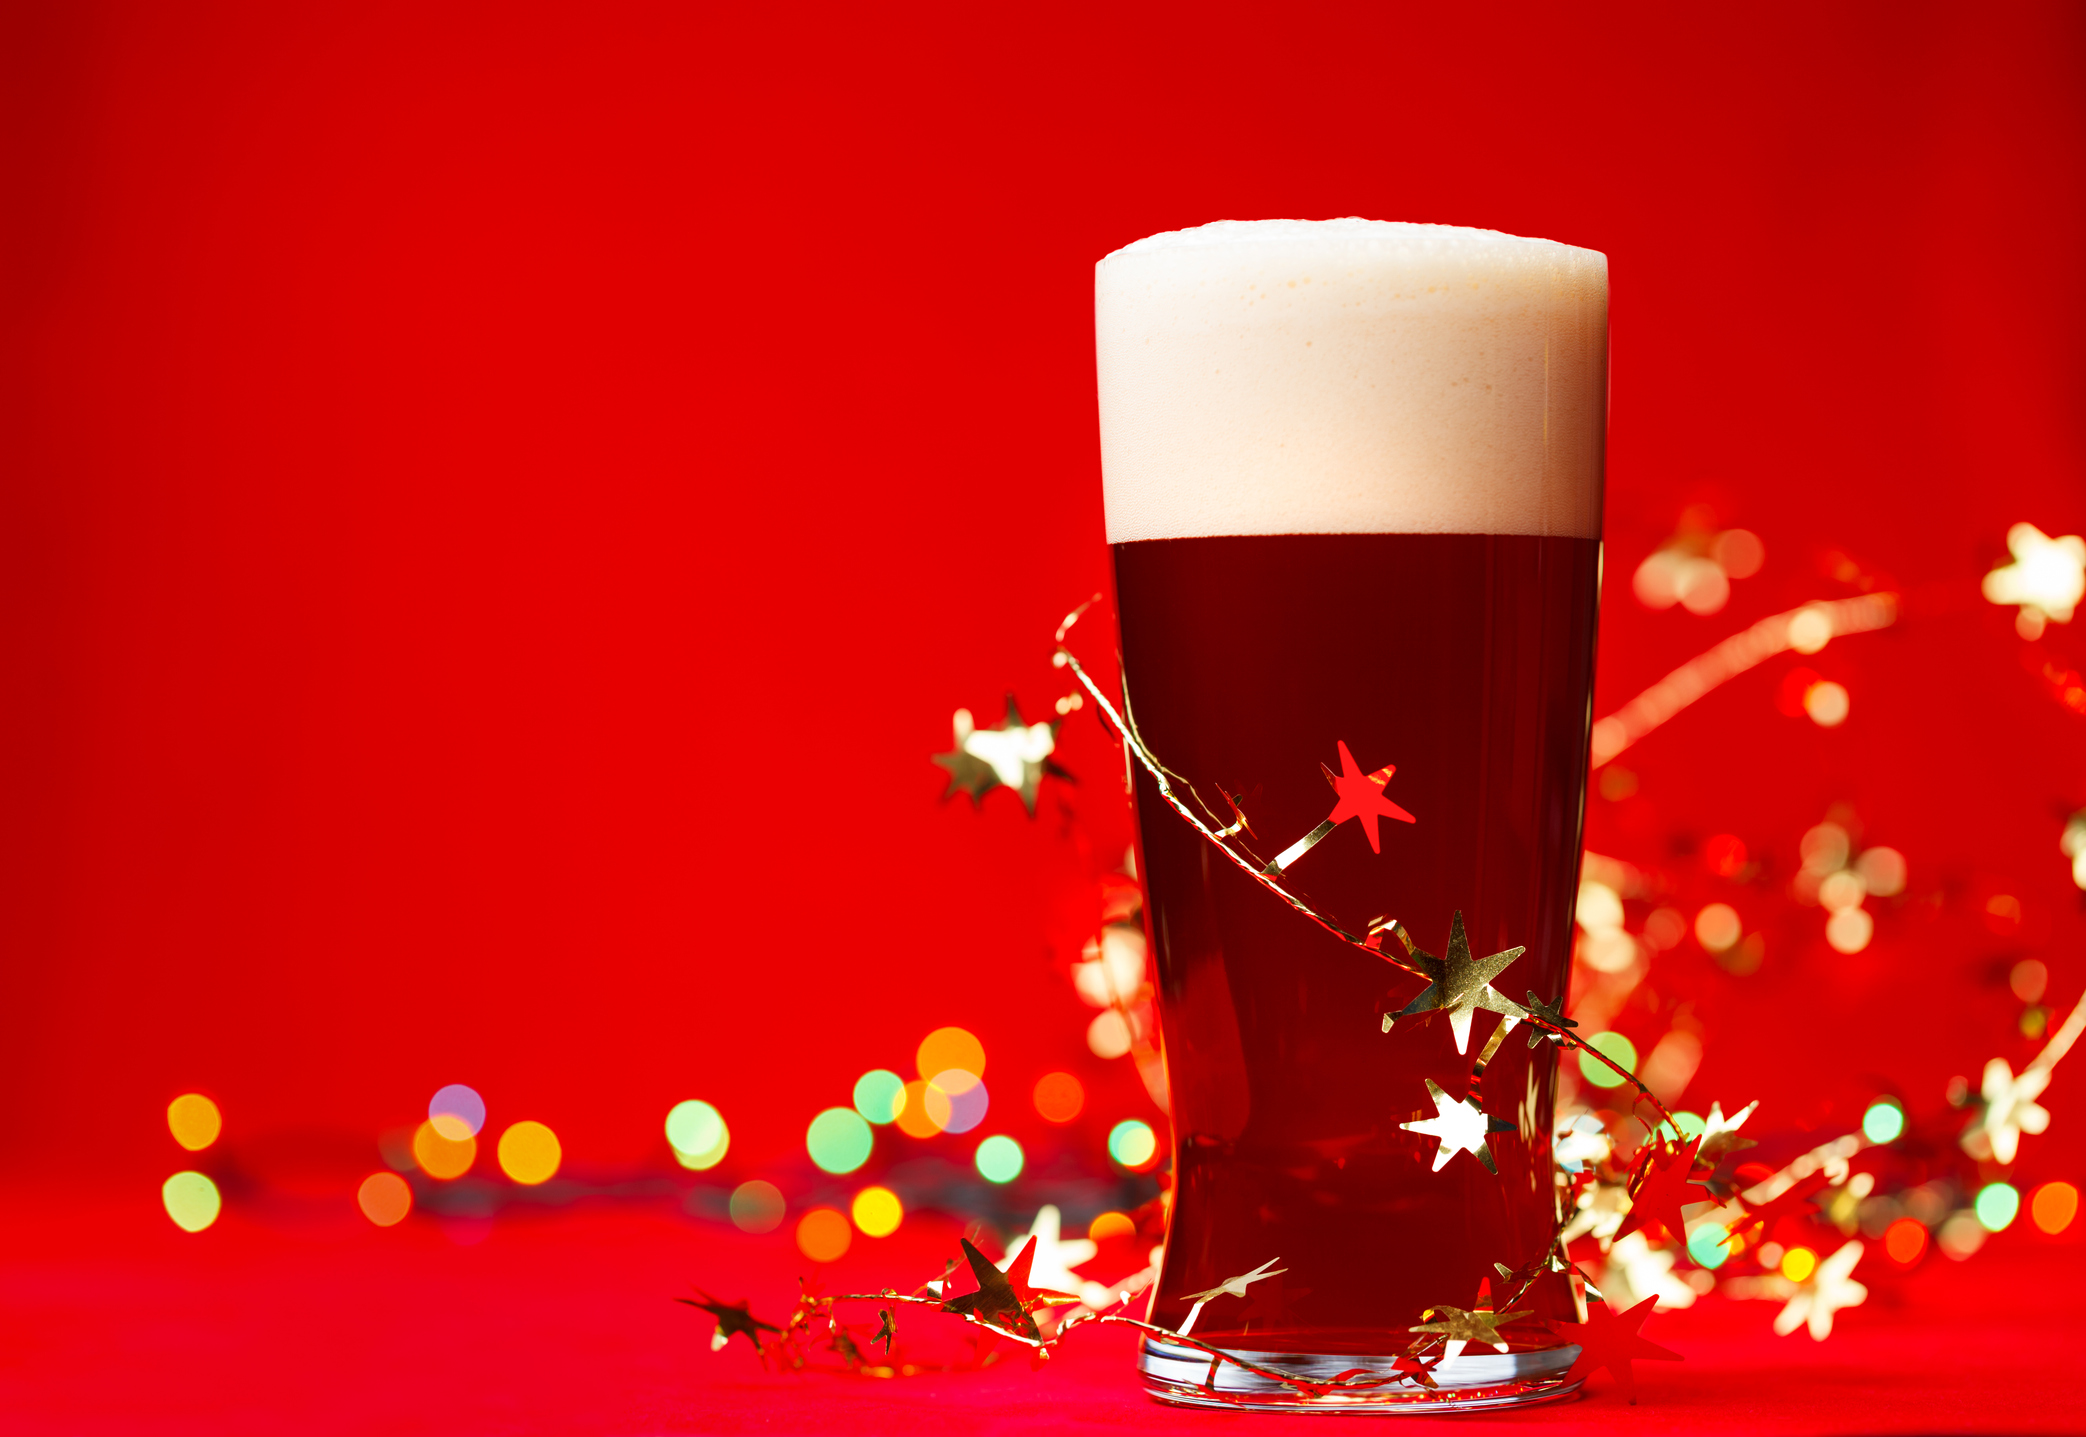 The Collingwood Brewery Holiday Cask Release